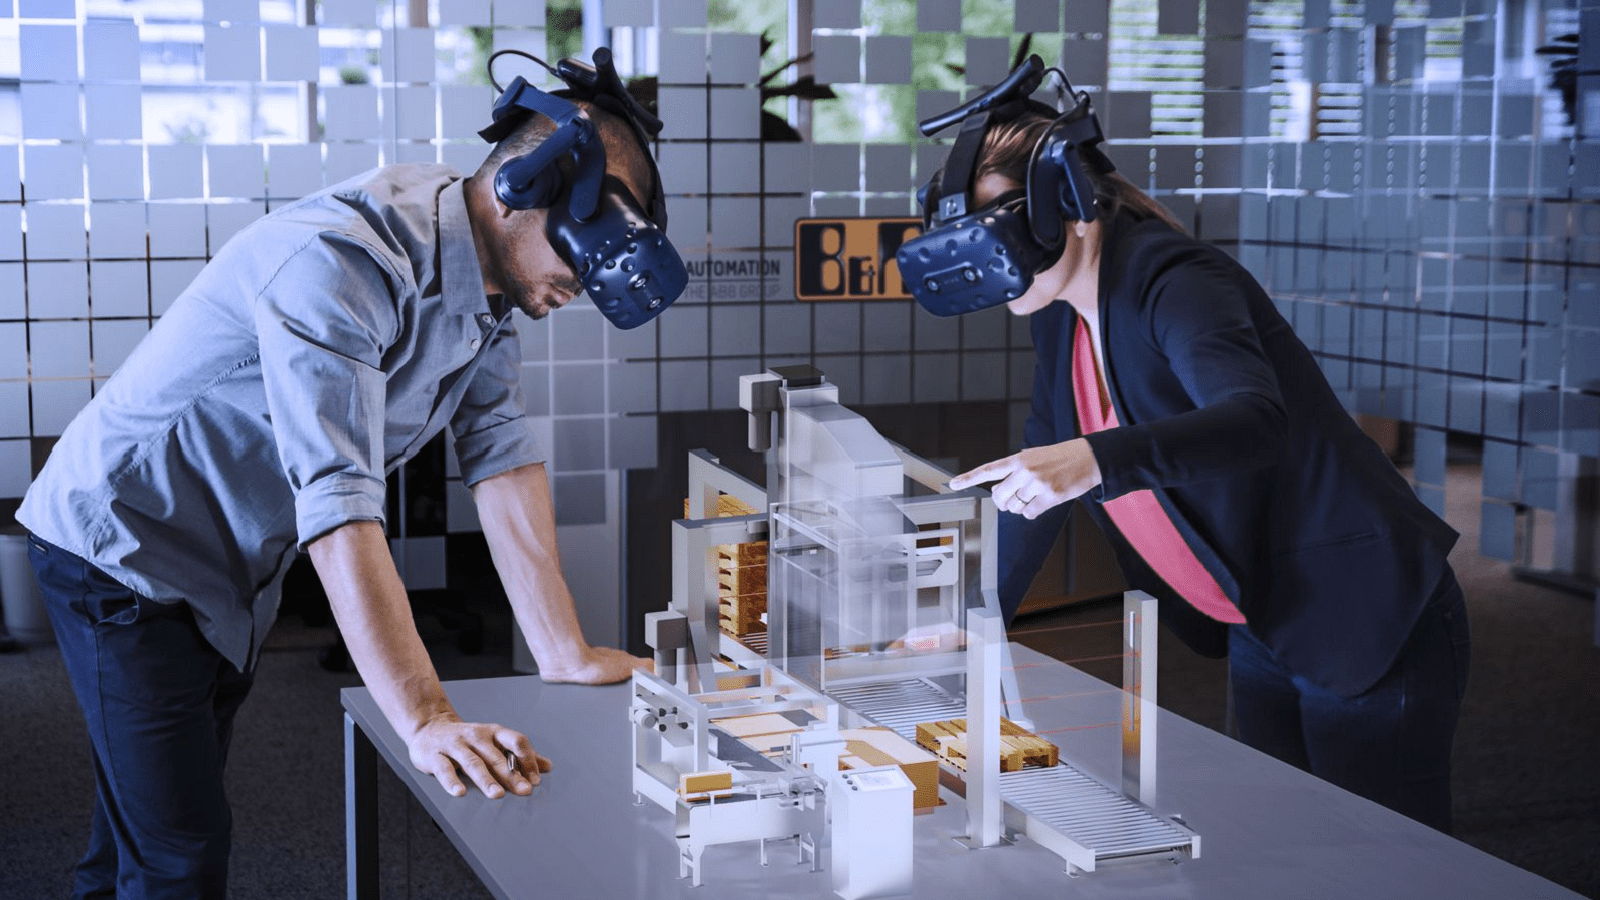 New Simulation Tool For Digital Twin Development – Metrology and Quality News - Online Magazine